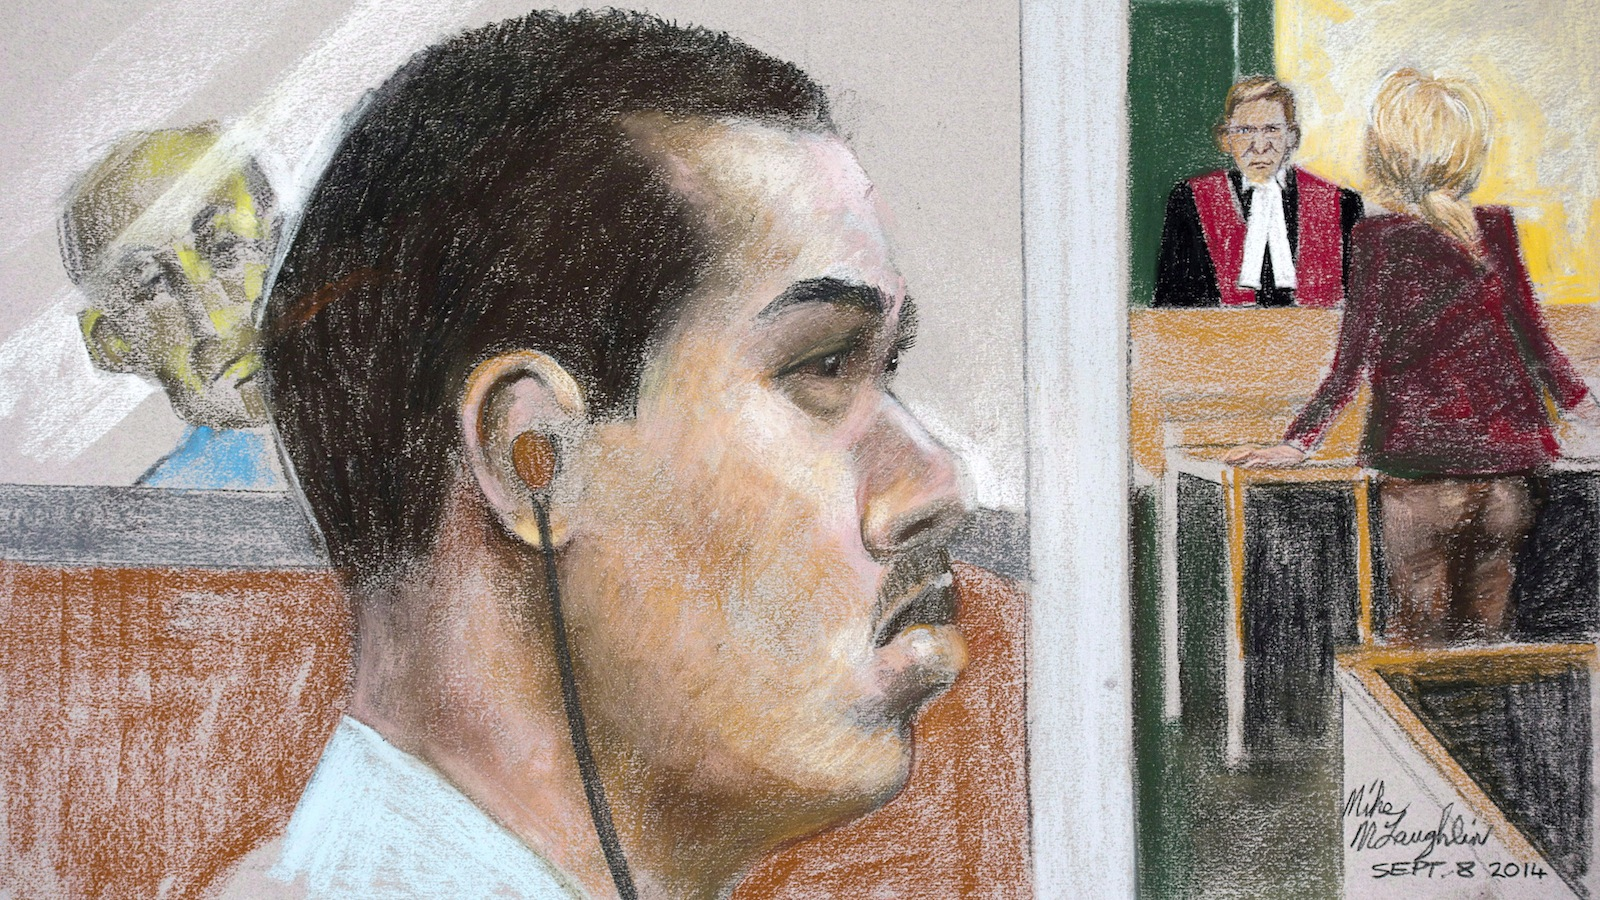 An artist's impression of Luka Magnotta is shown at the Montreal Courthouse. (Mike McLaughlin/CP)